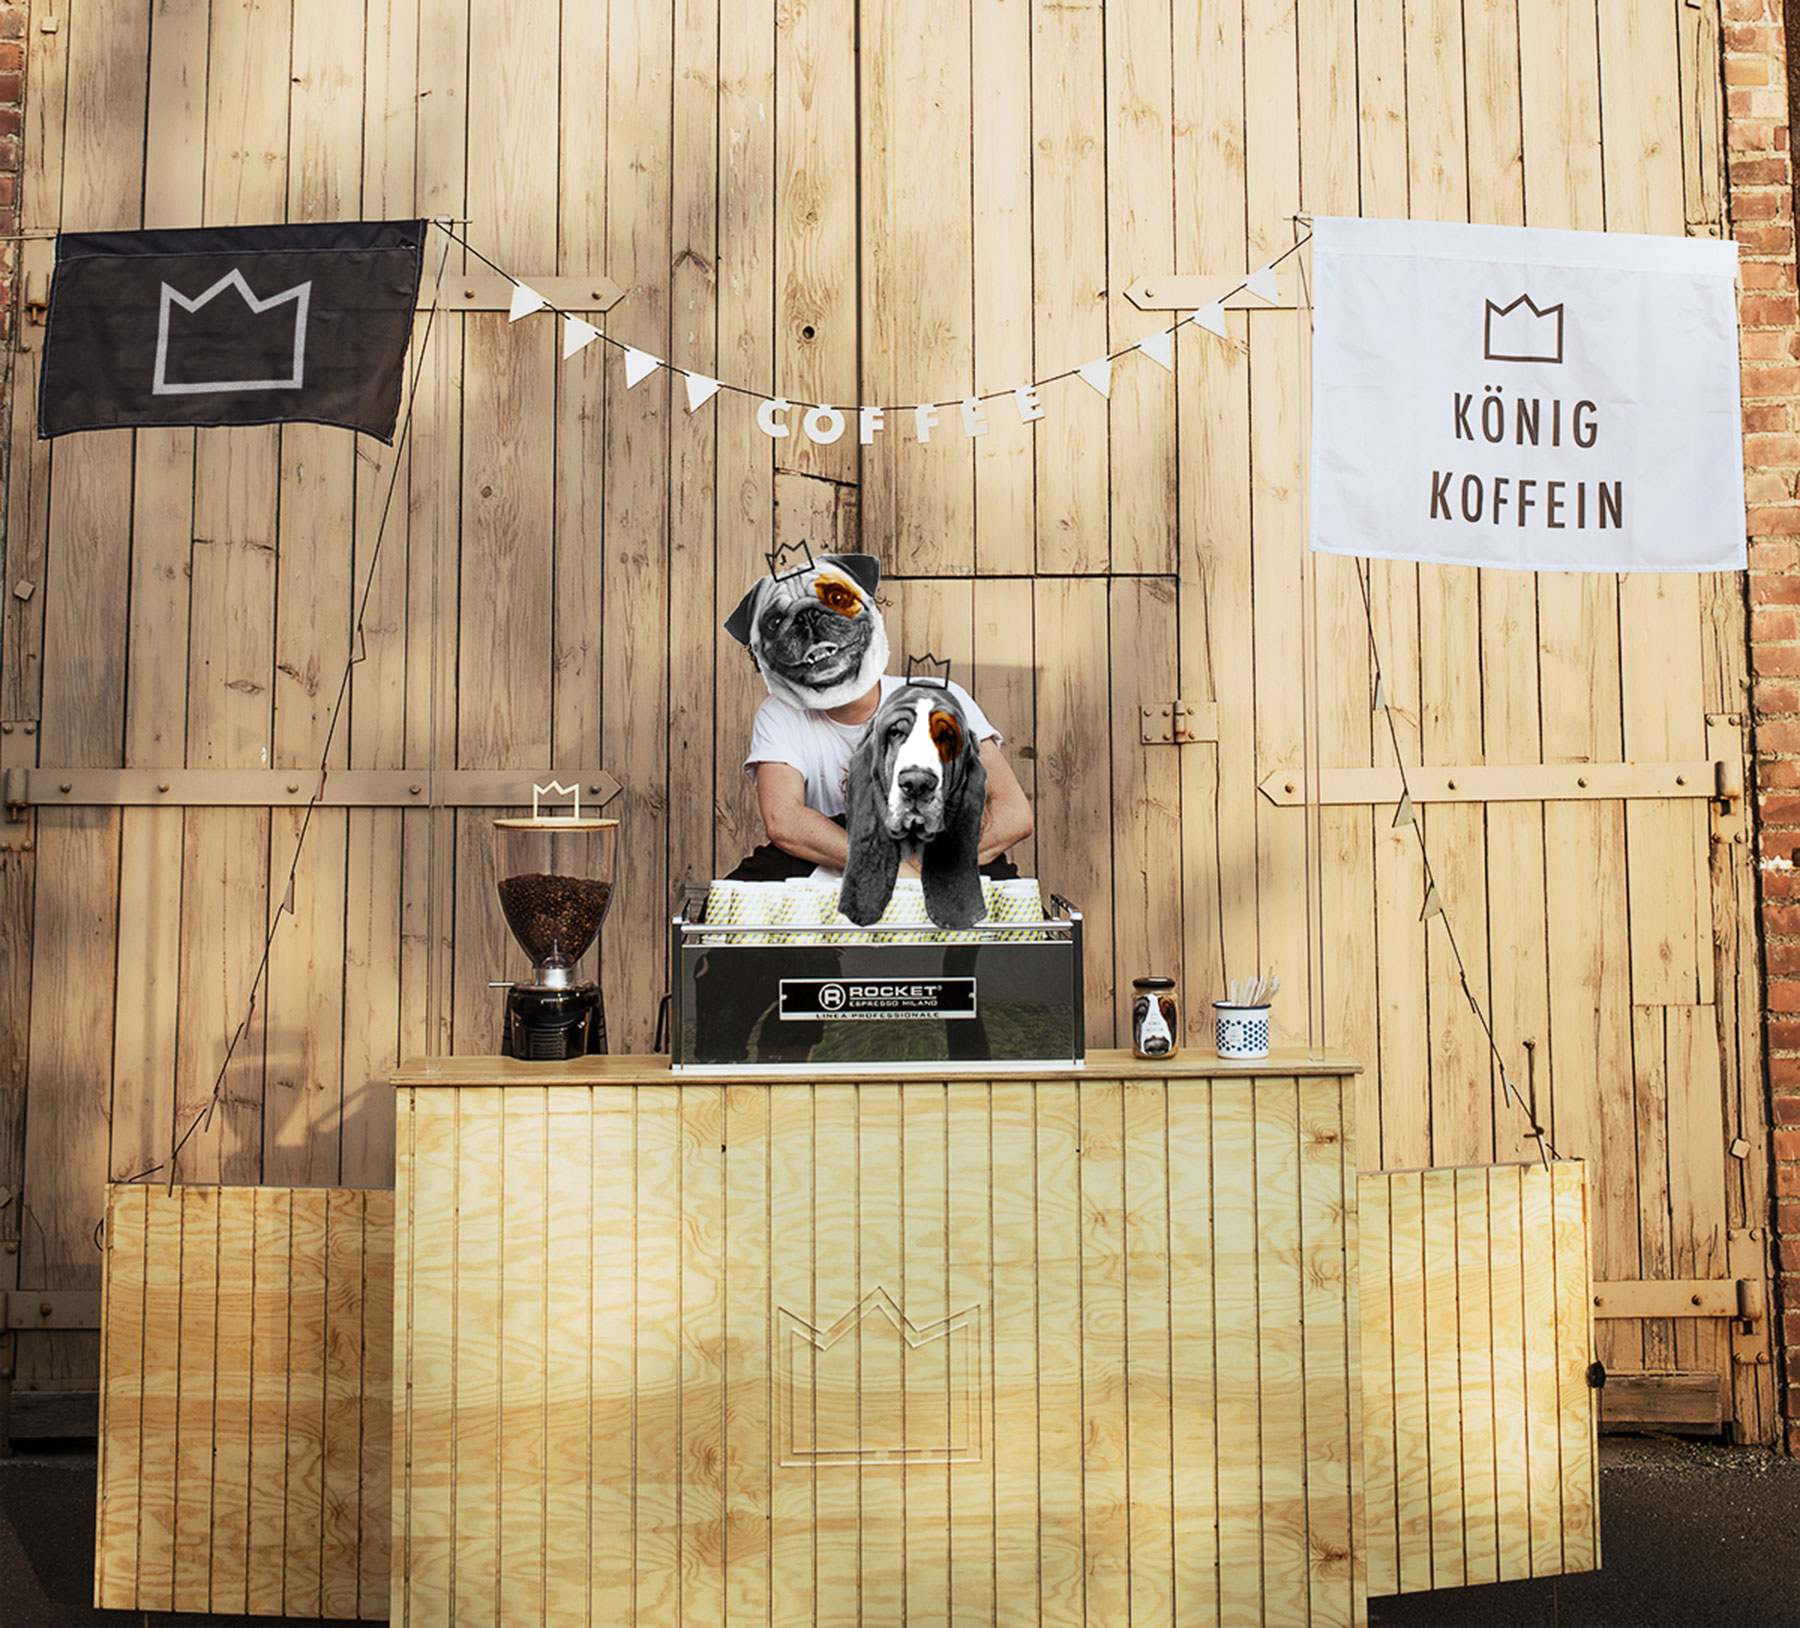 koenig-koffein-mobile-coffee-kaffee-catering-happy-jump-dog